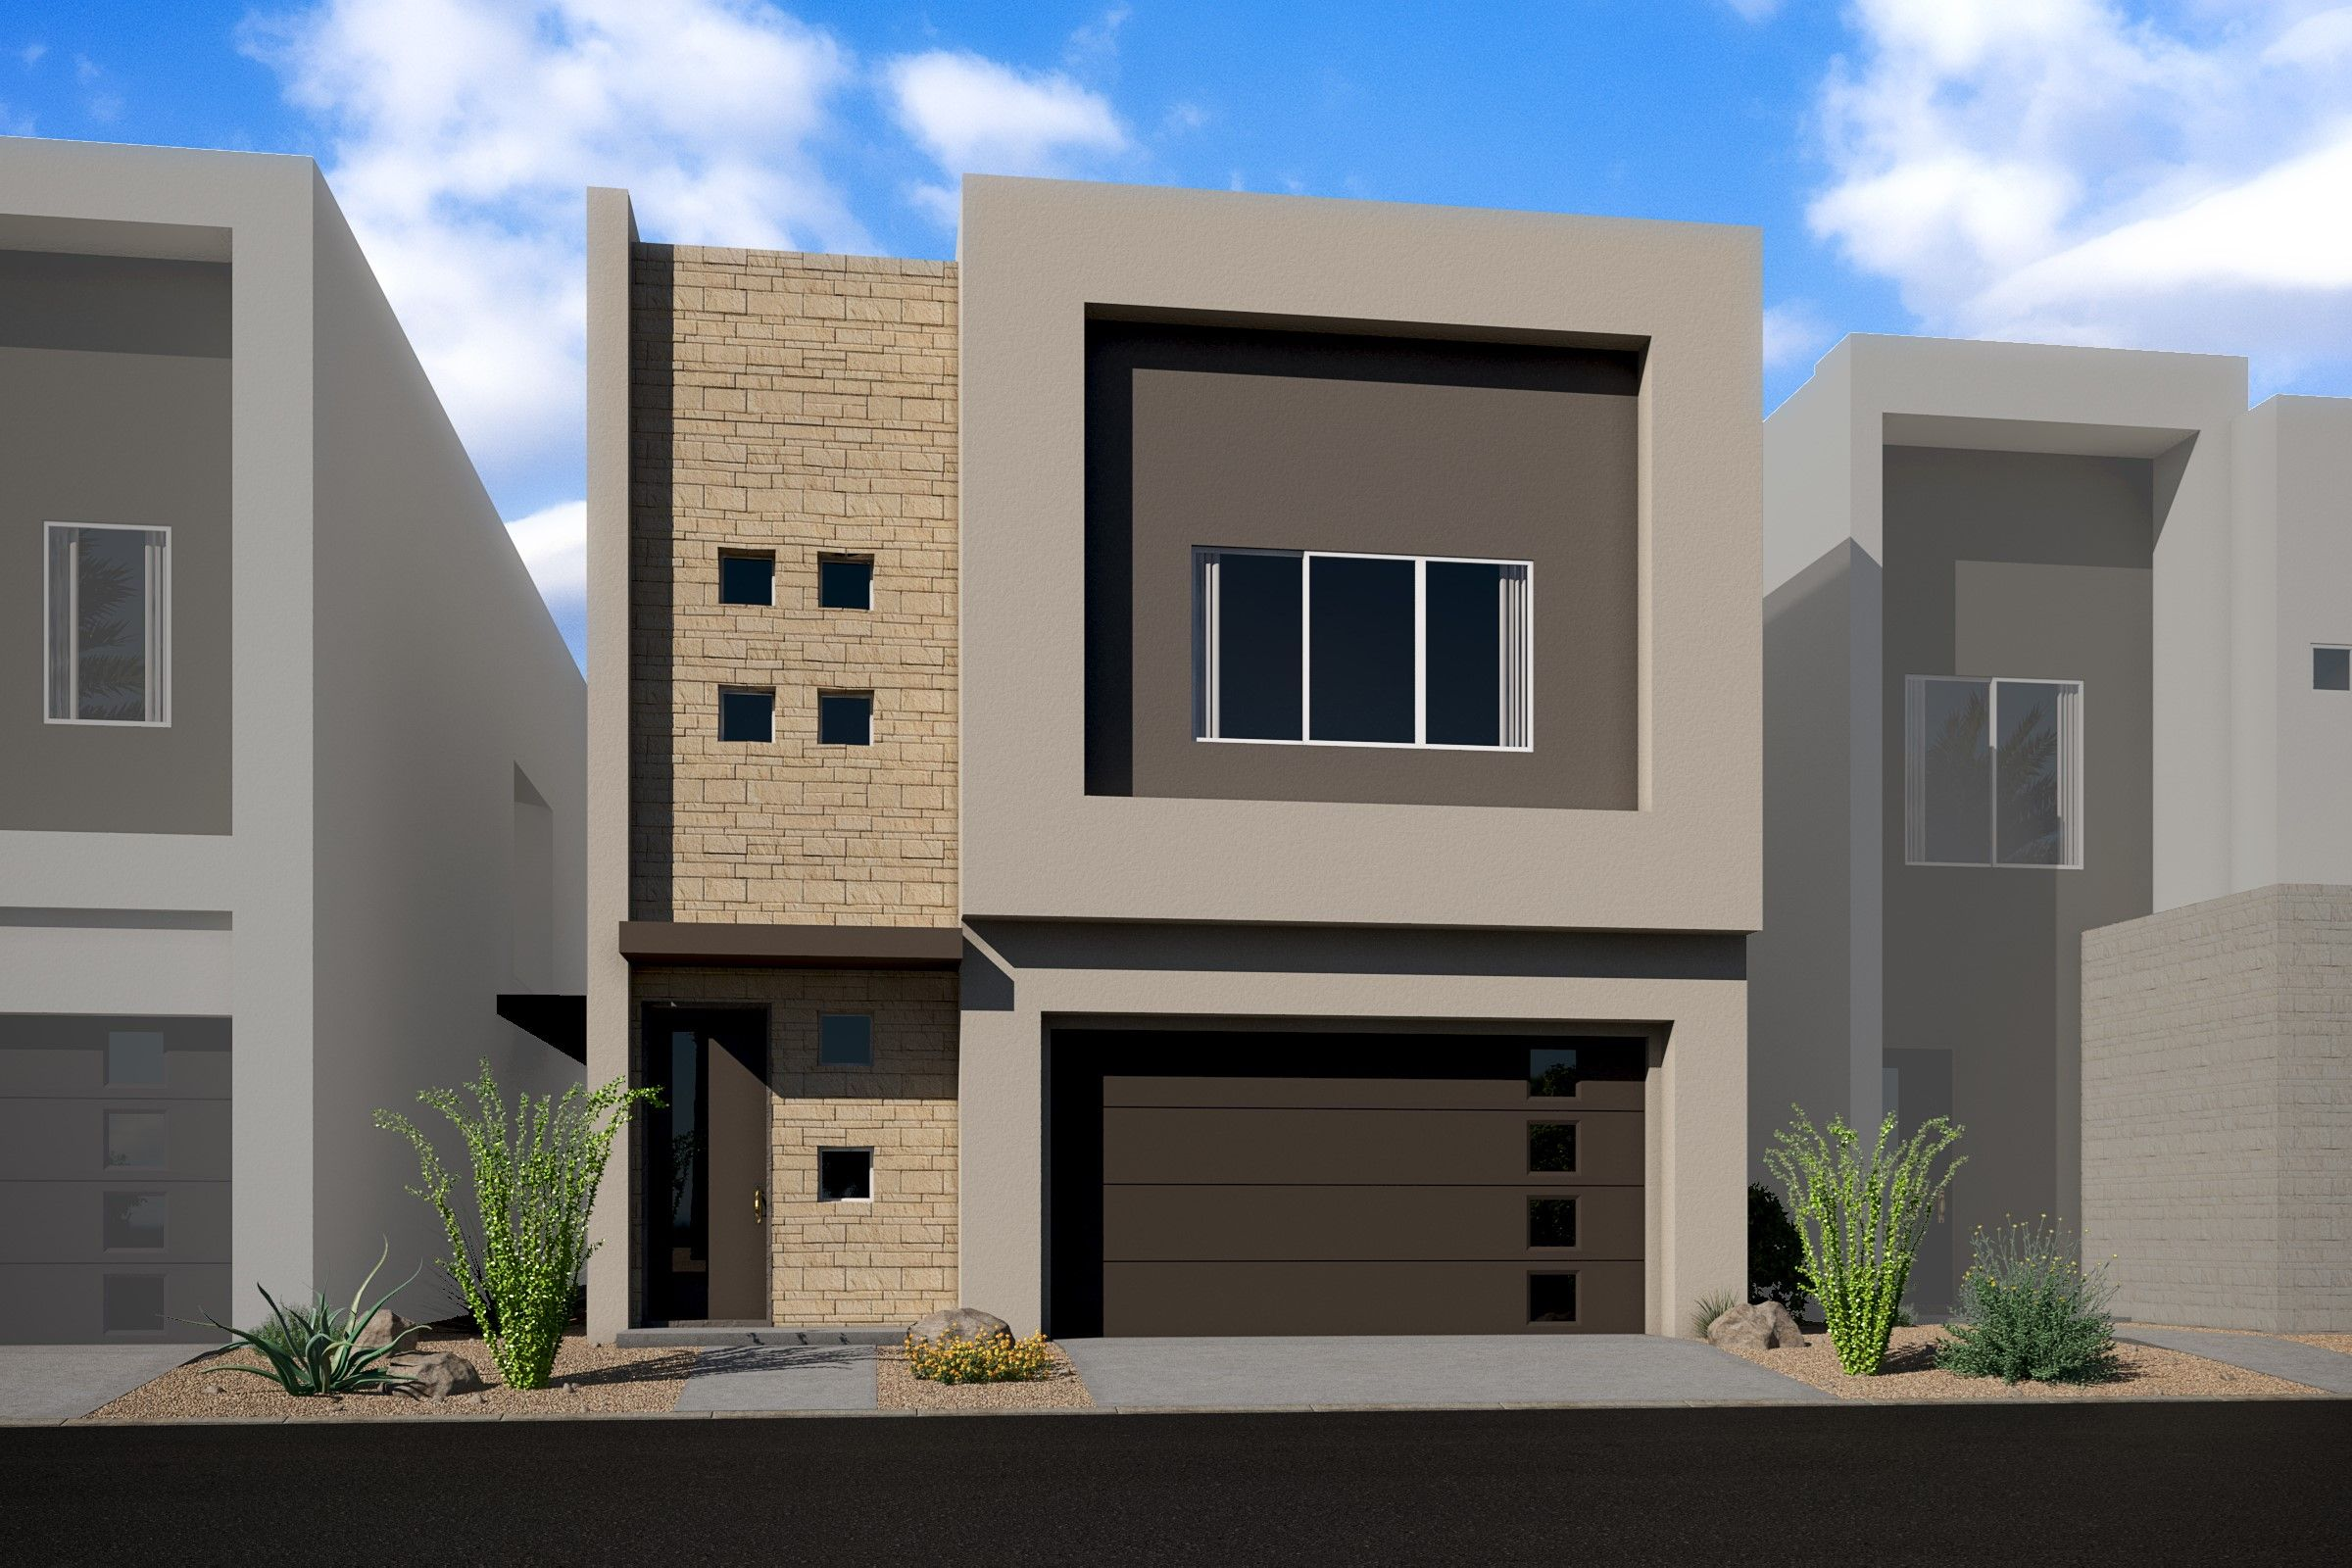 Single Family for Sale at Skye - Prelude 68th Street And Mcdowell Rd Scottsdale, Arizona 85257 United States